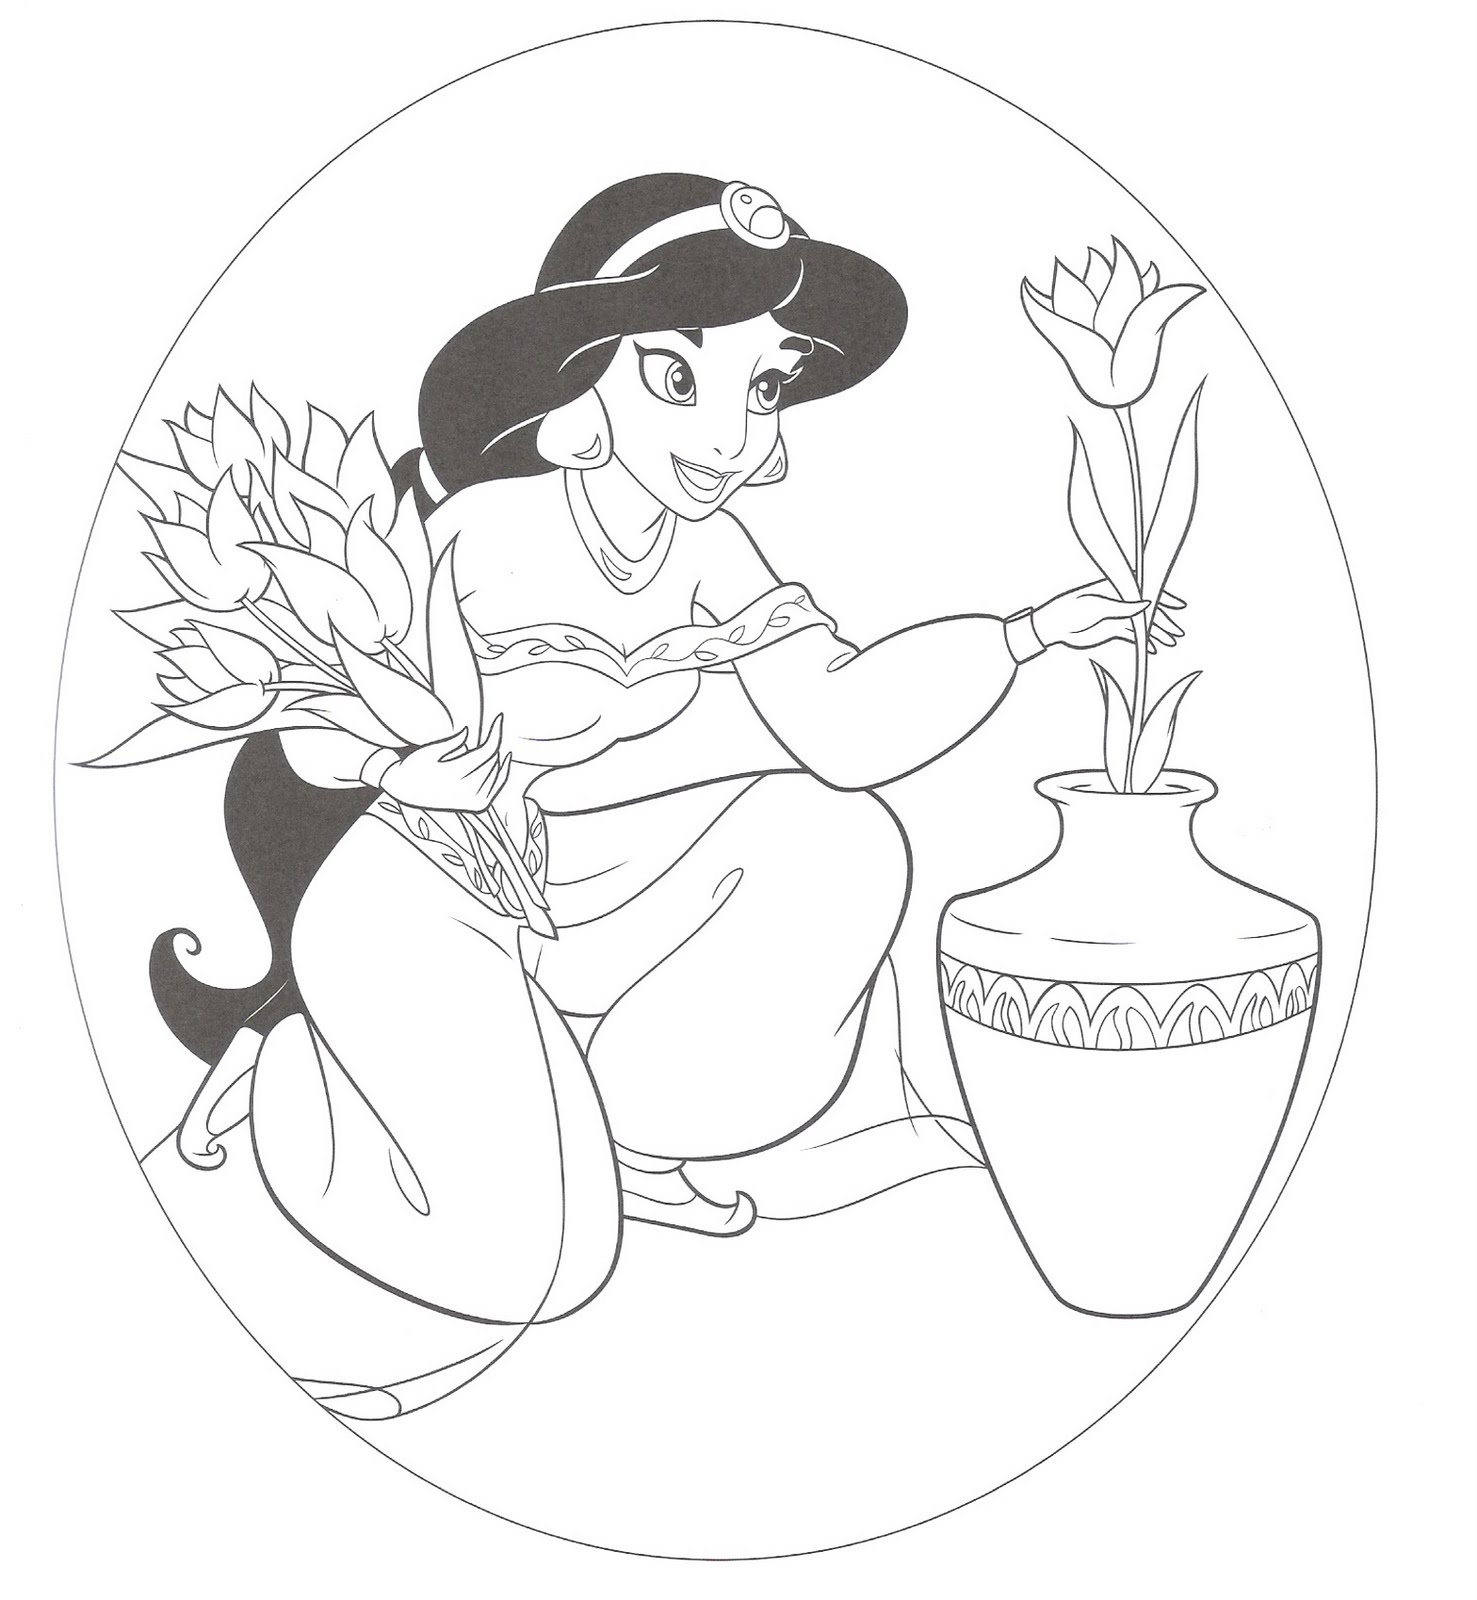 jasmine coloring pages to print - photo#24